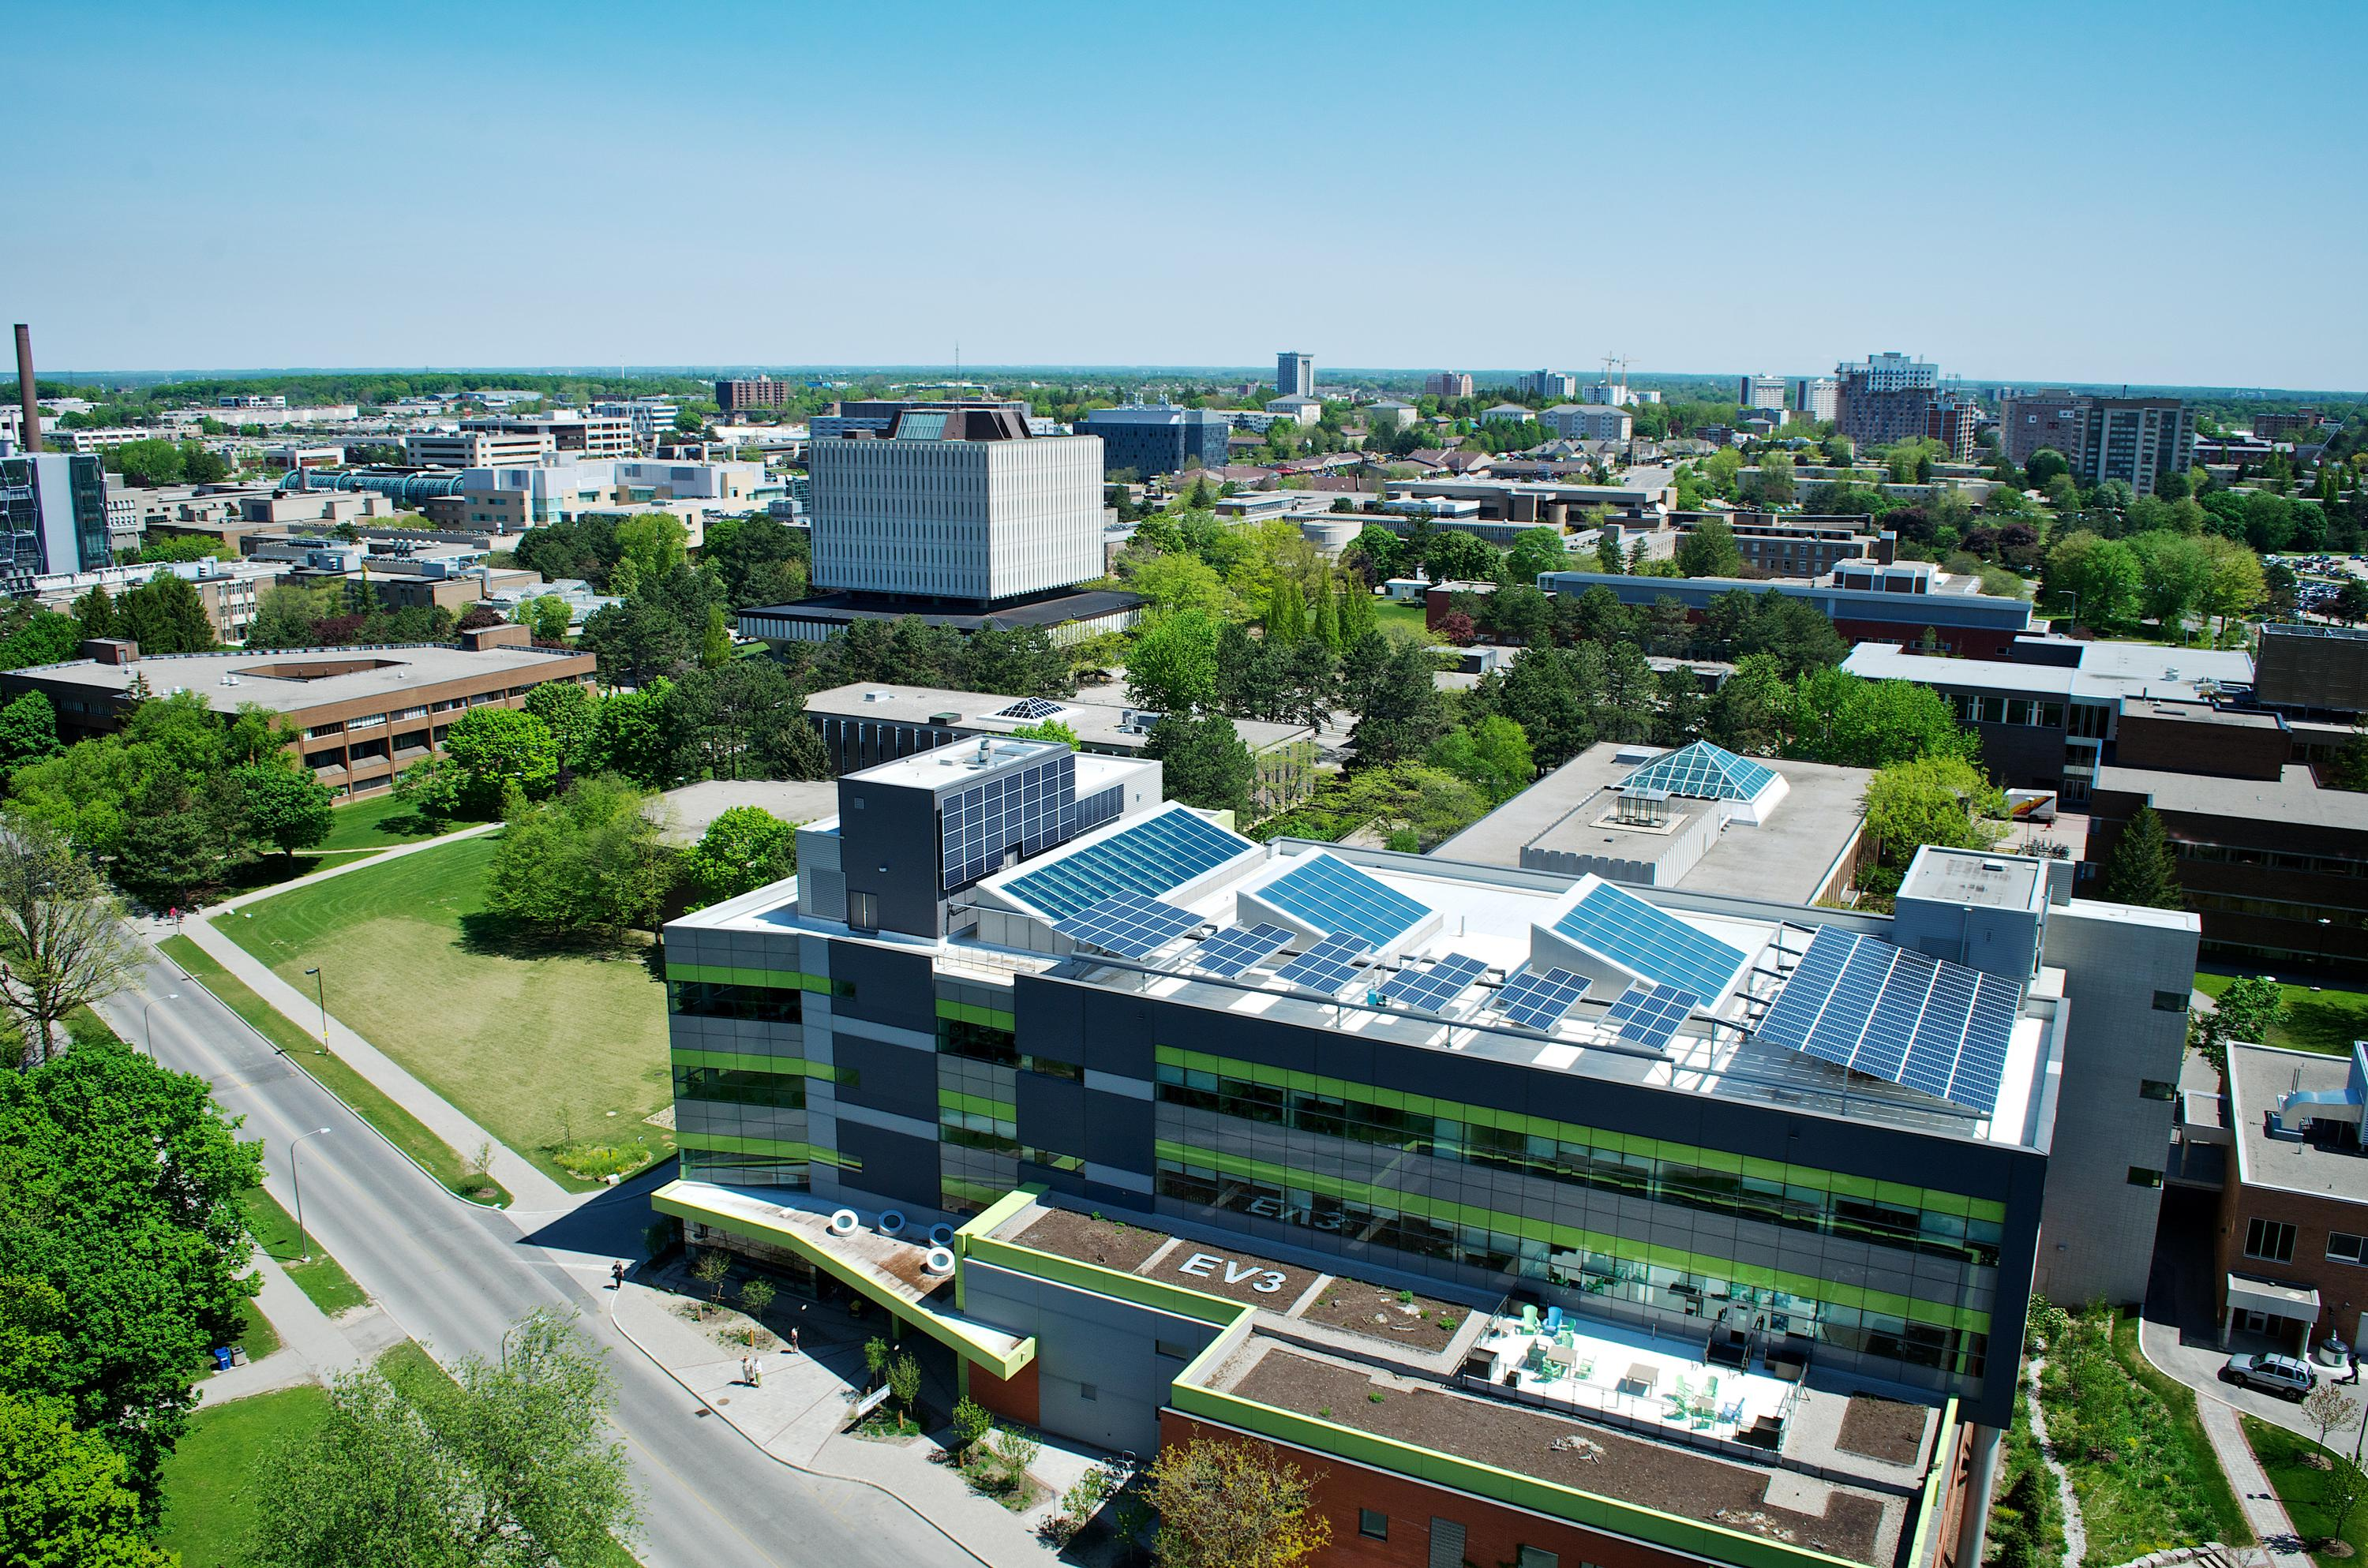 Aerial view of campus with focus on Environment 3 Building